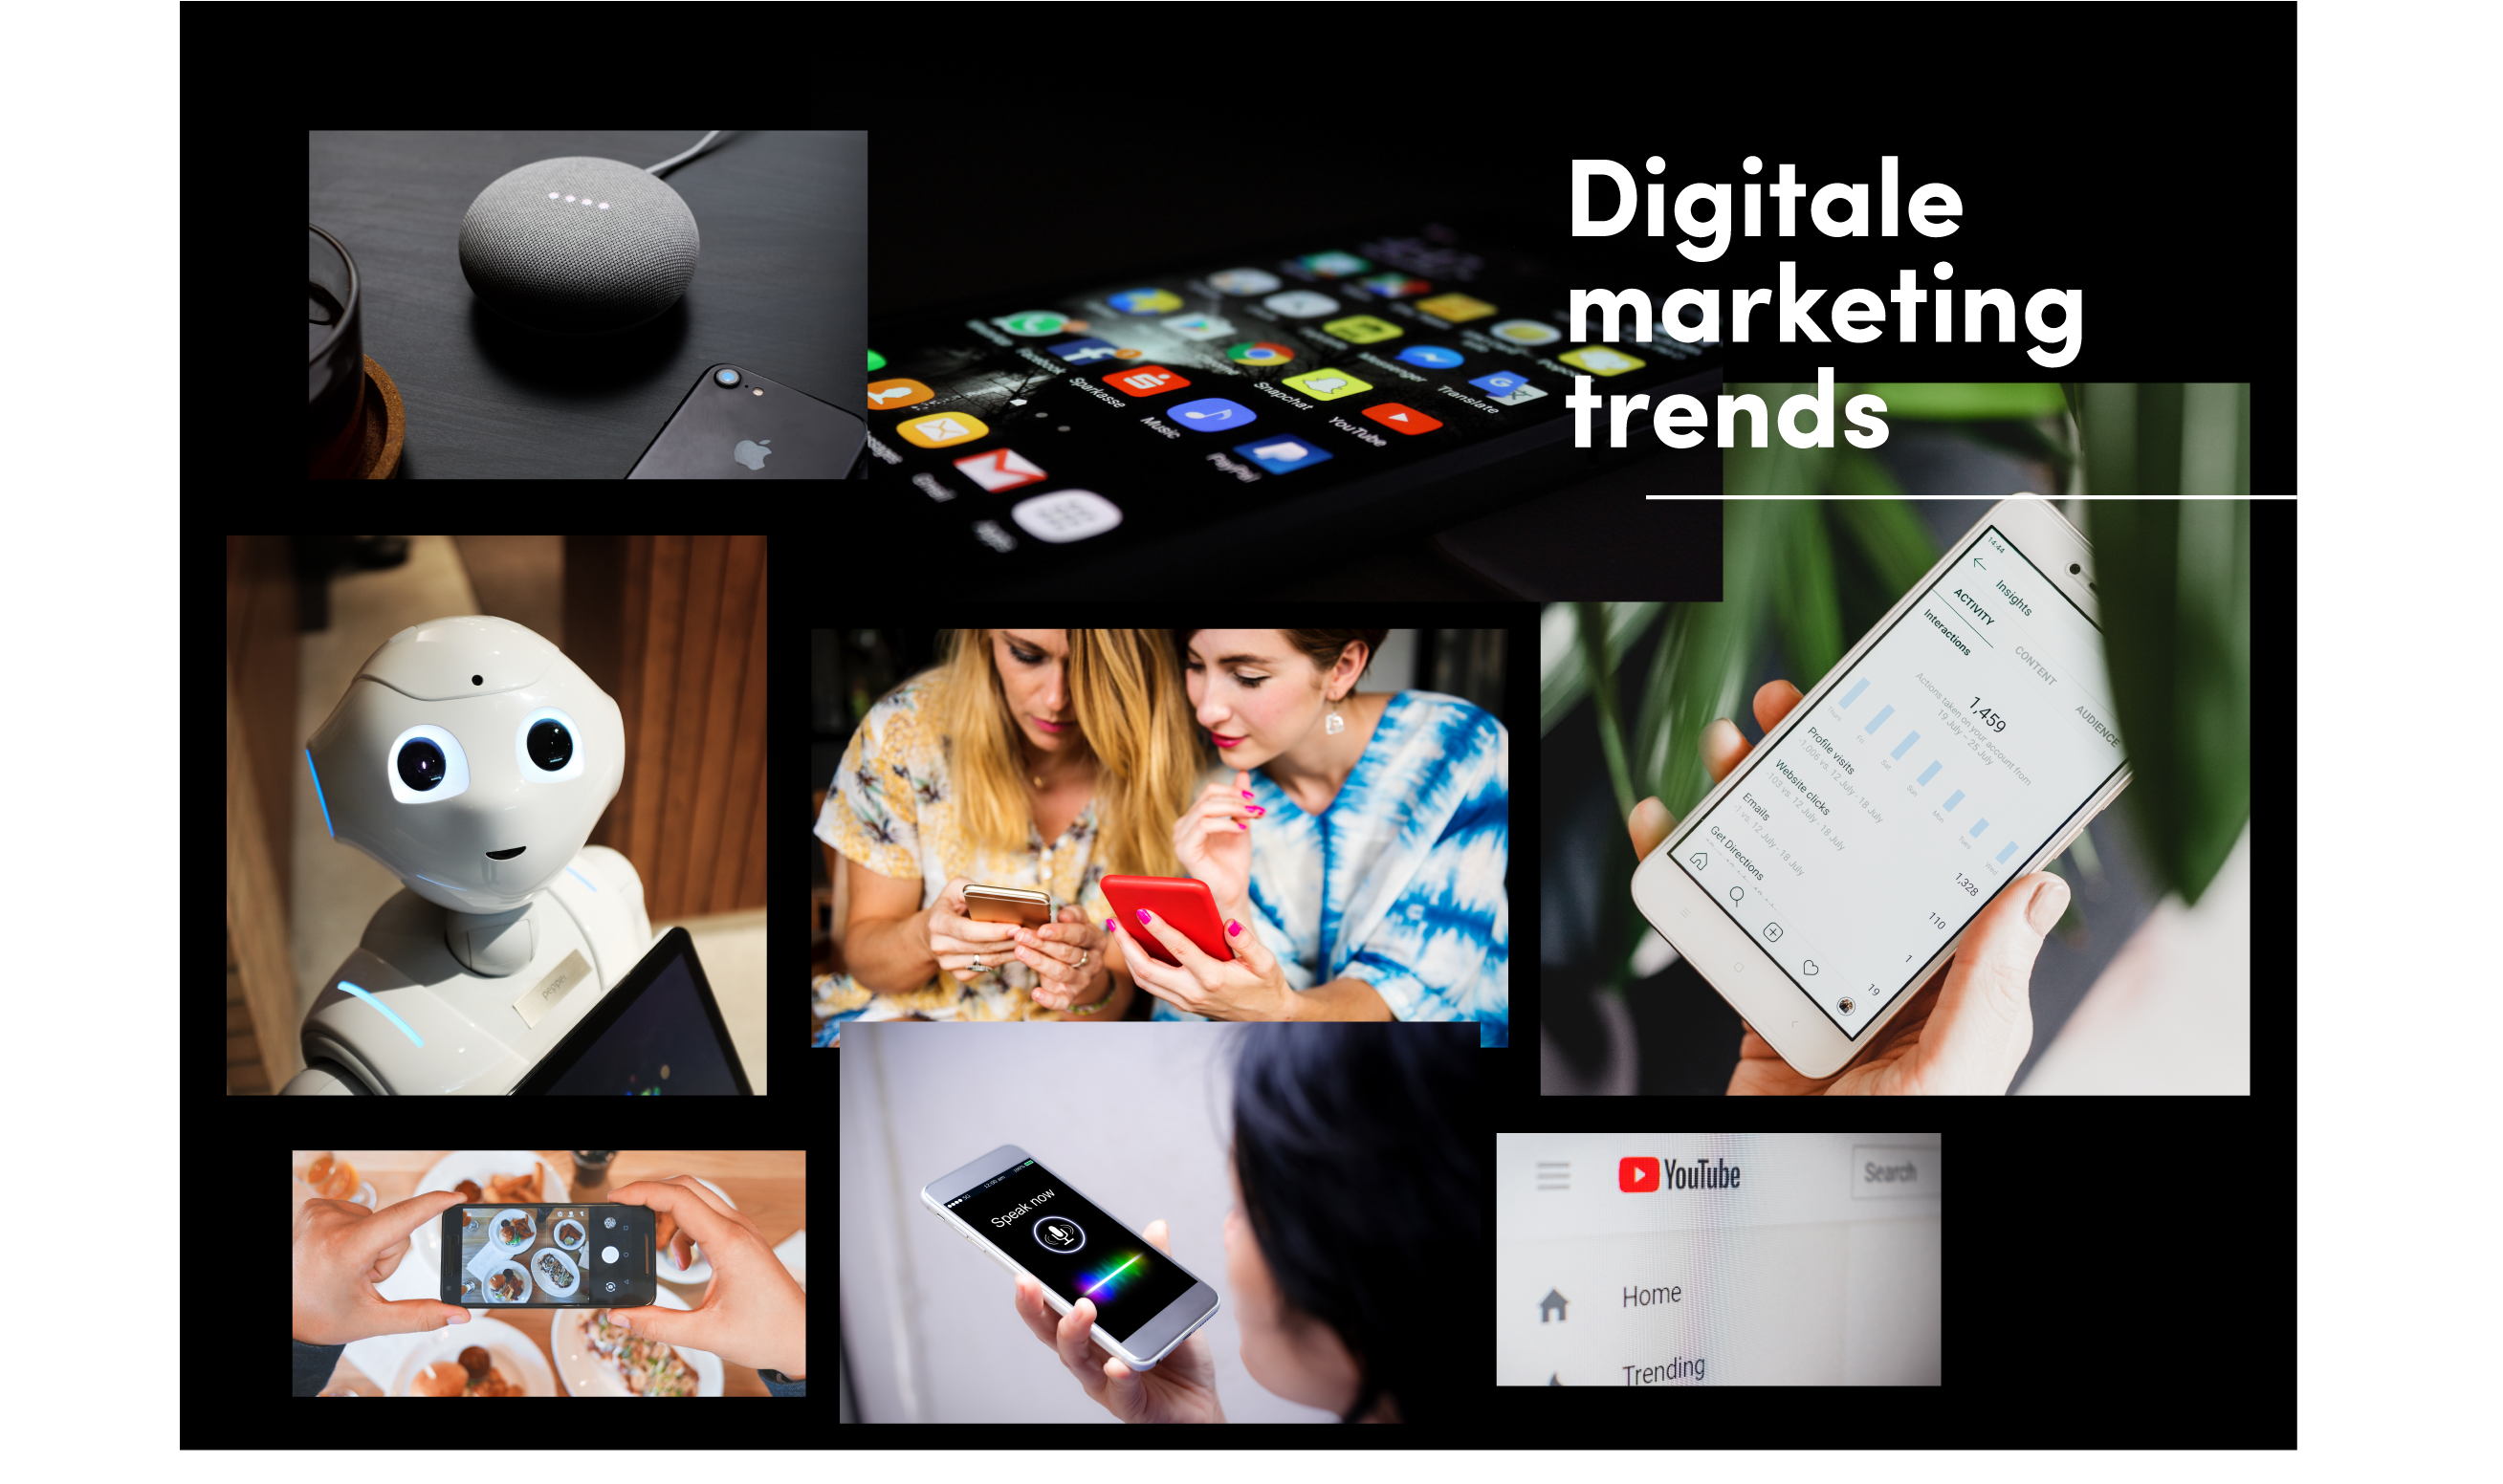 digitale marketingtrends moodboard